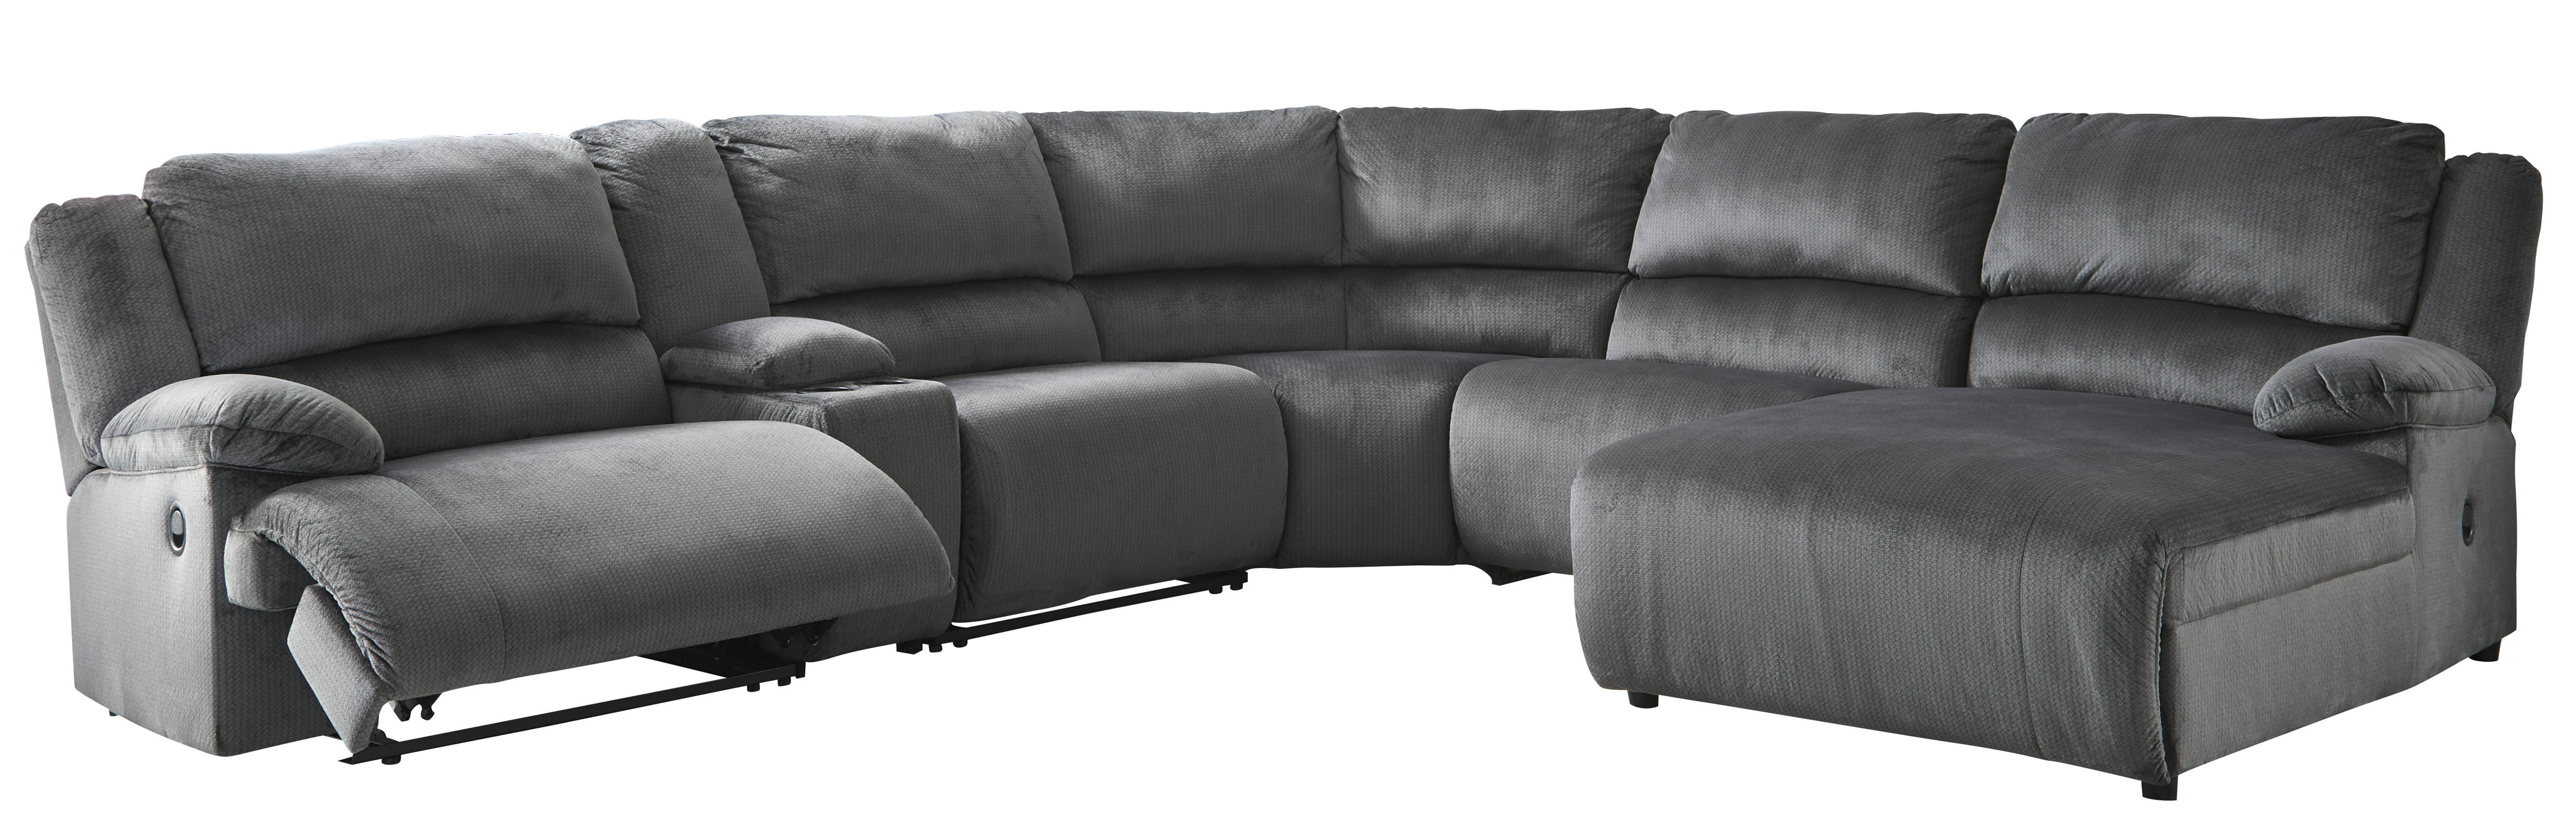 Amazing Ashley Furniture Clonmel Charcoal 6Pc Raf Sectional Gamerscity Chair Design For Home Gamerscityorg